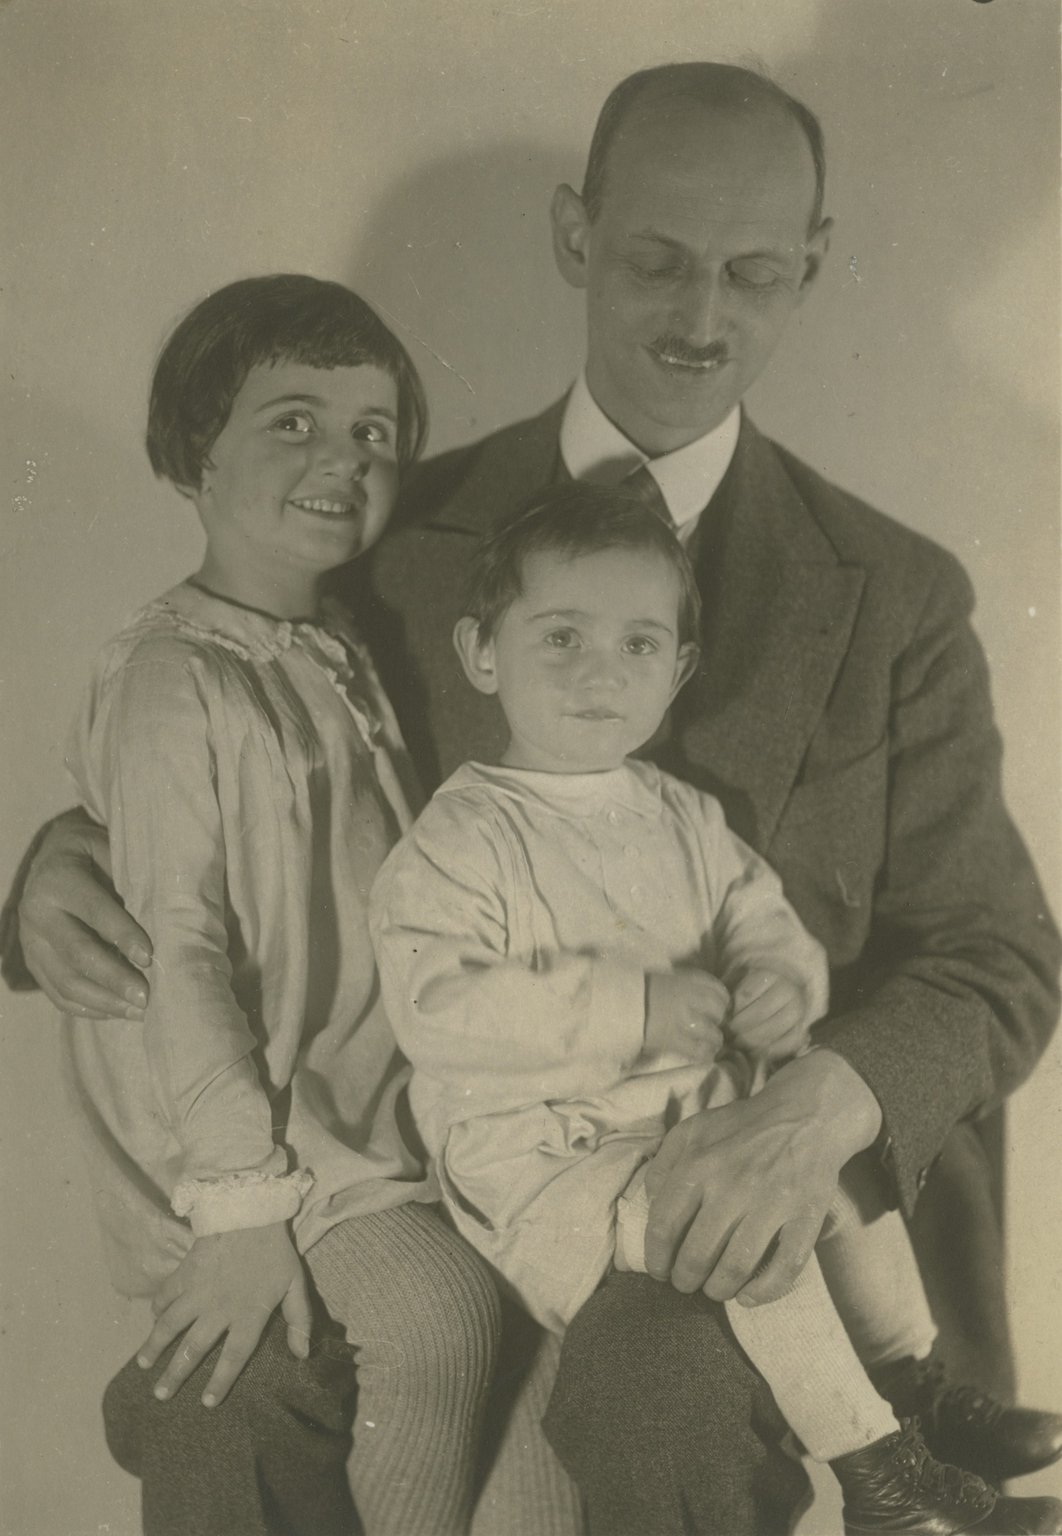 Otto Frank with his daughters Margot and Anne, 1931